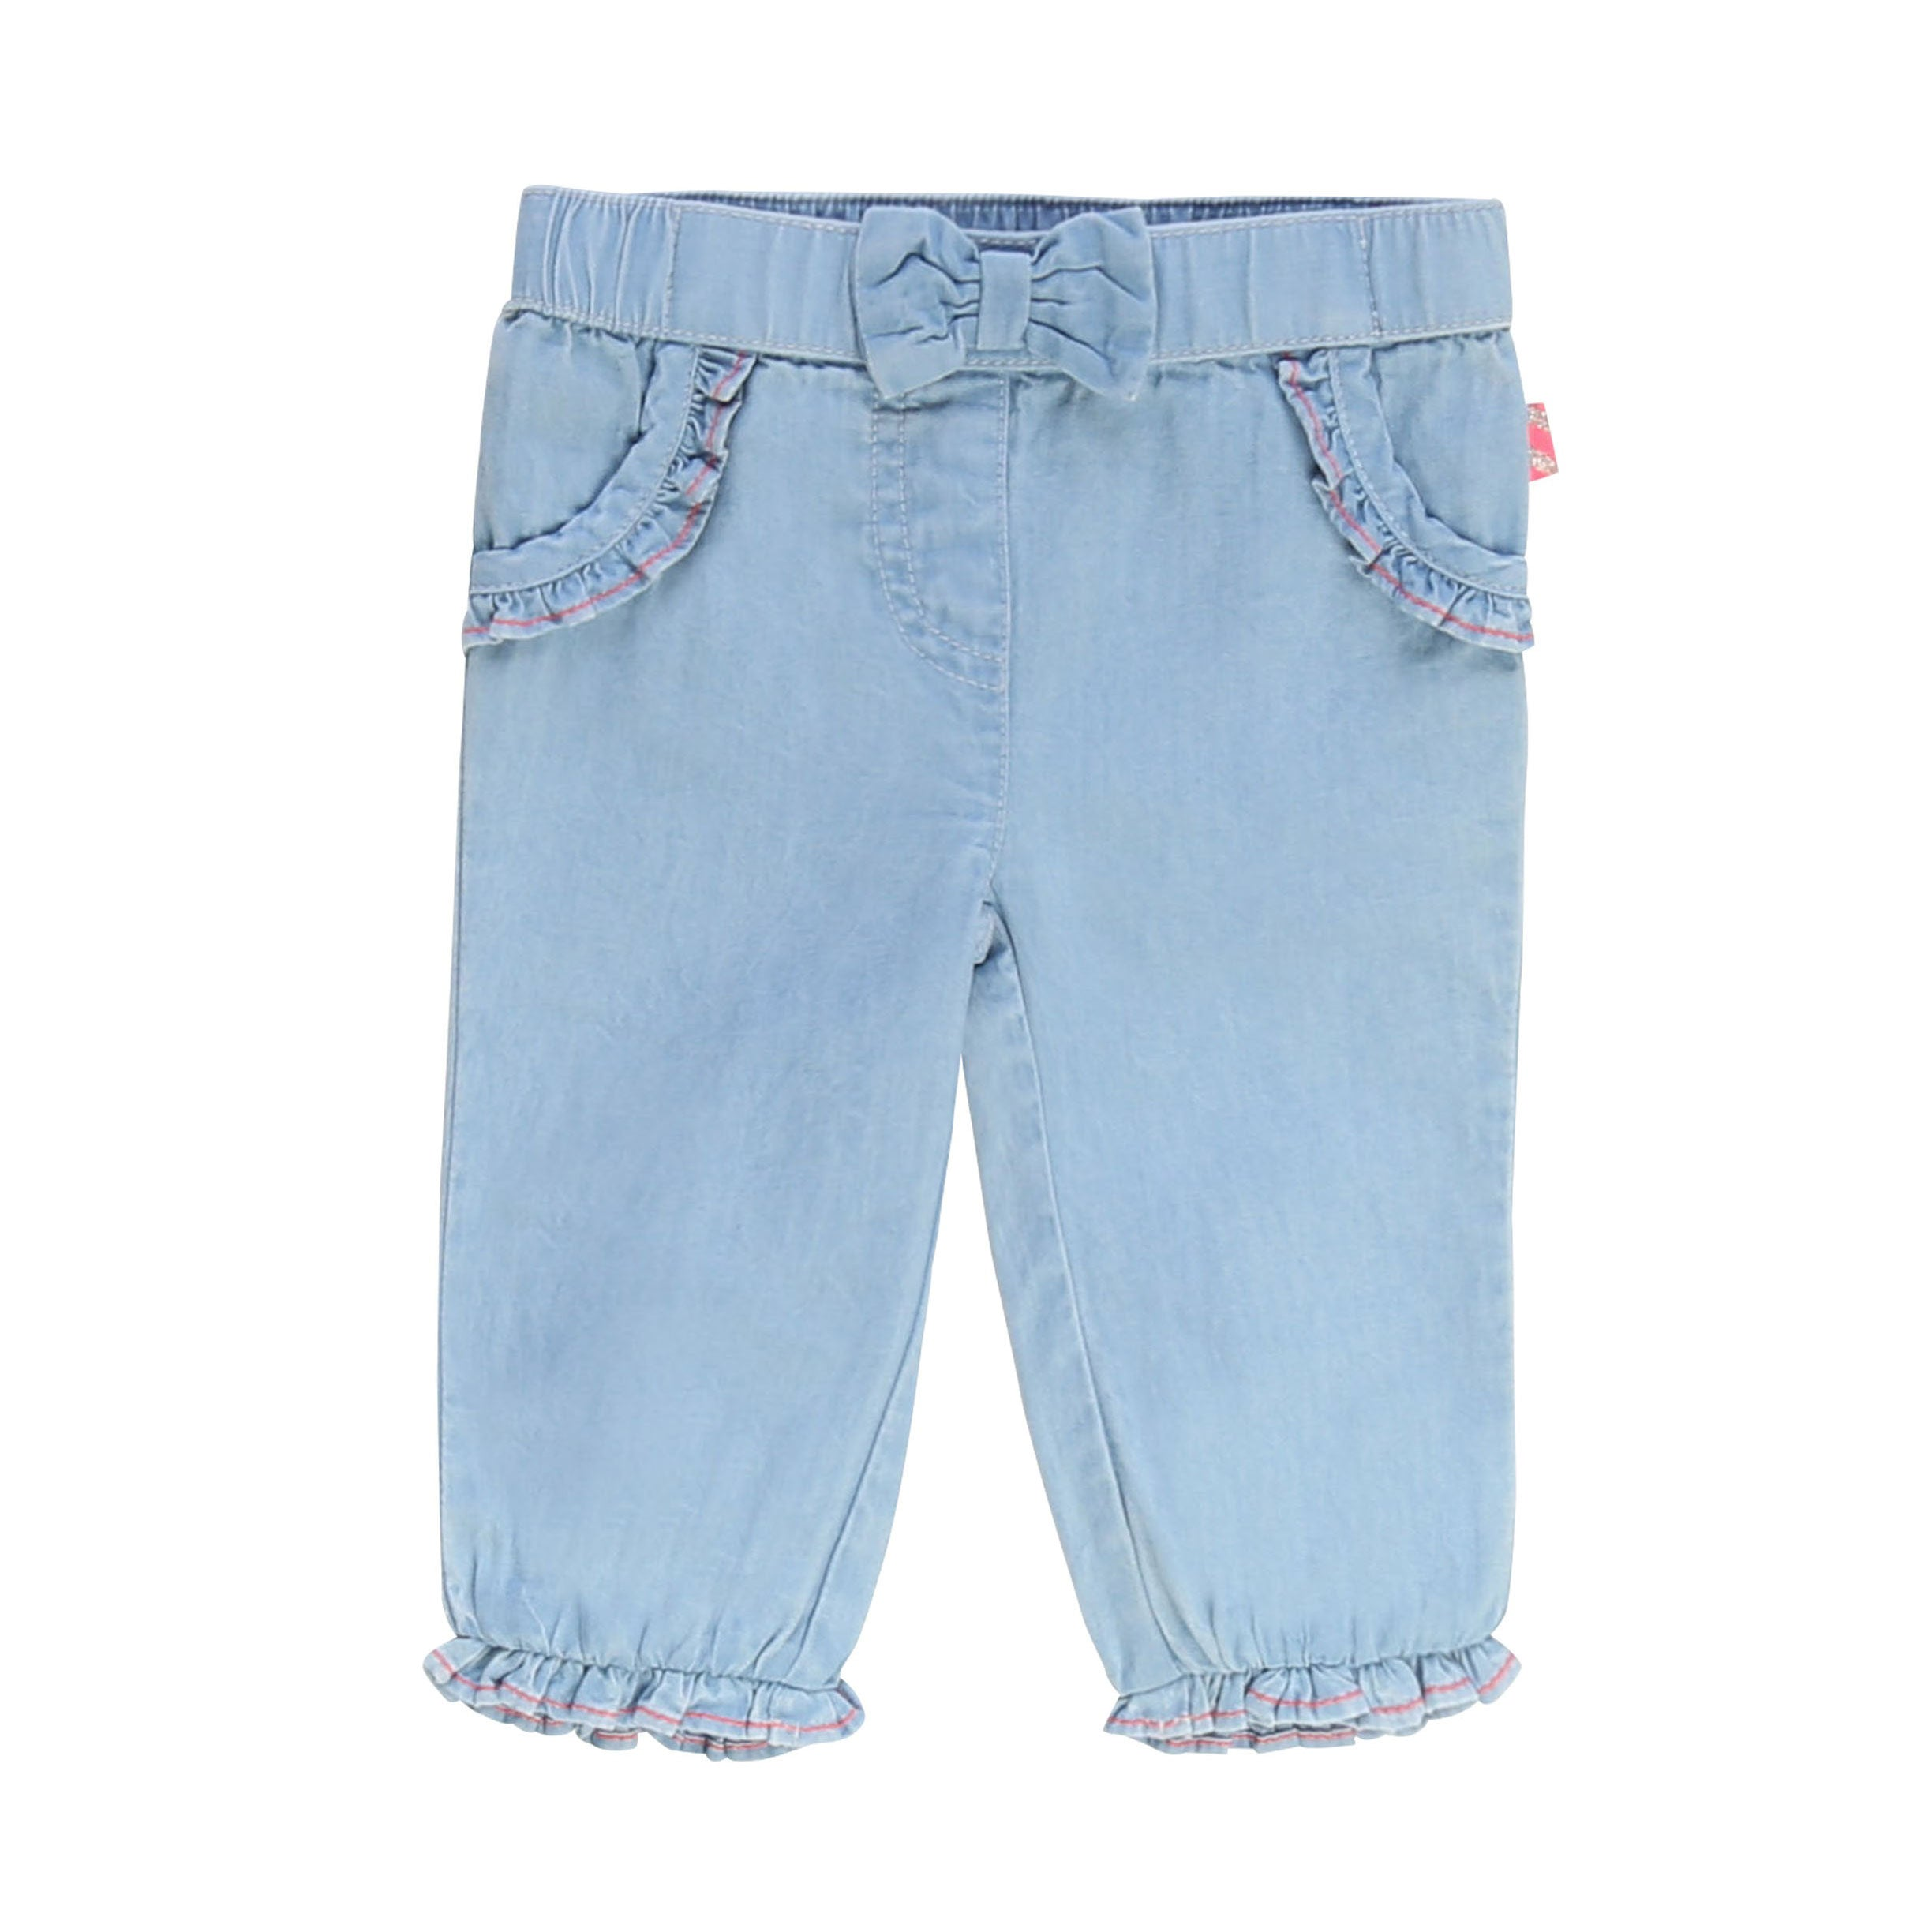 BillieBlush Baby Girl Jeans at Bonjour Baby Baskets, Luxury Baby Gifts